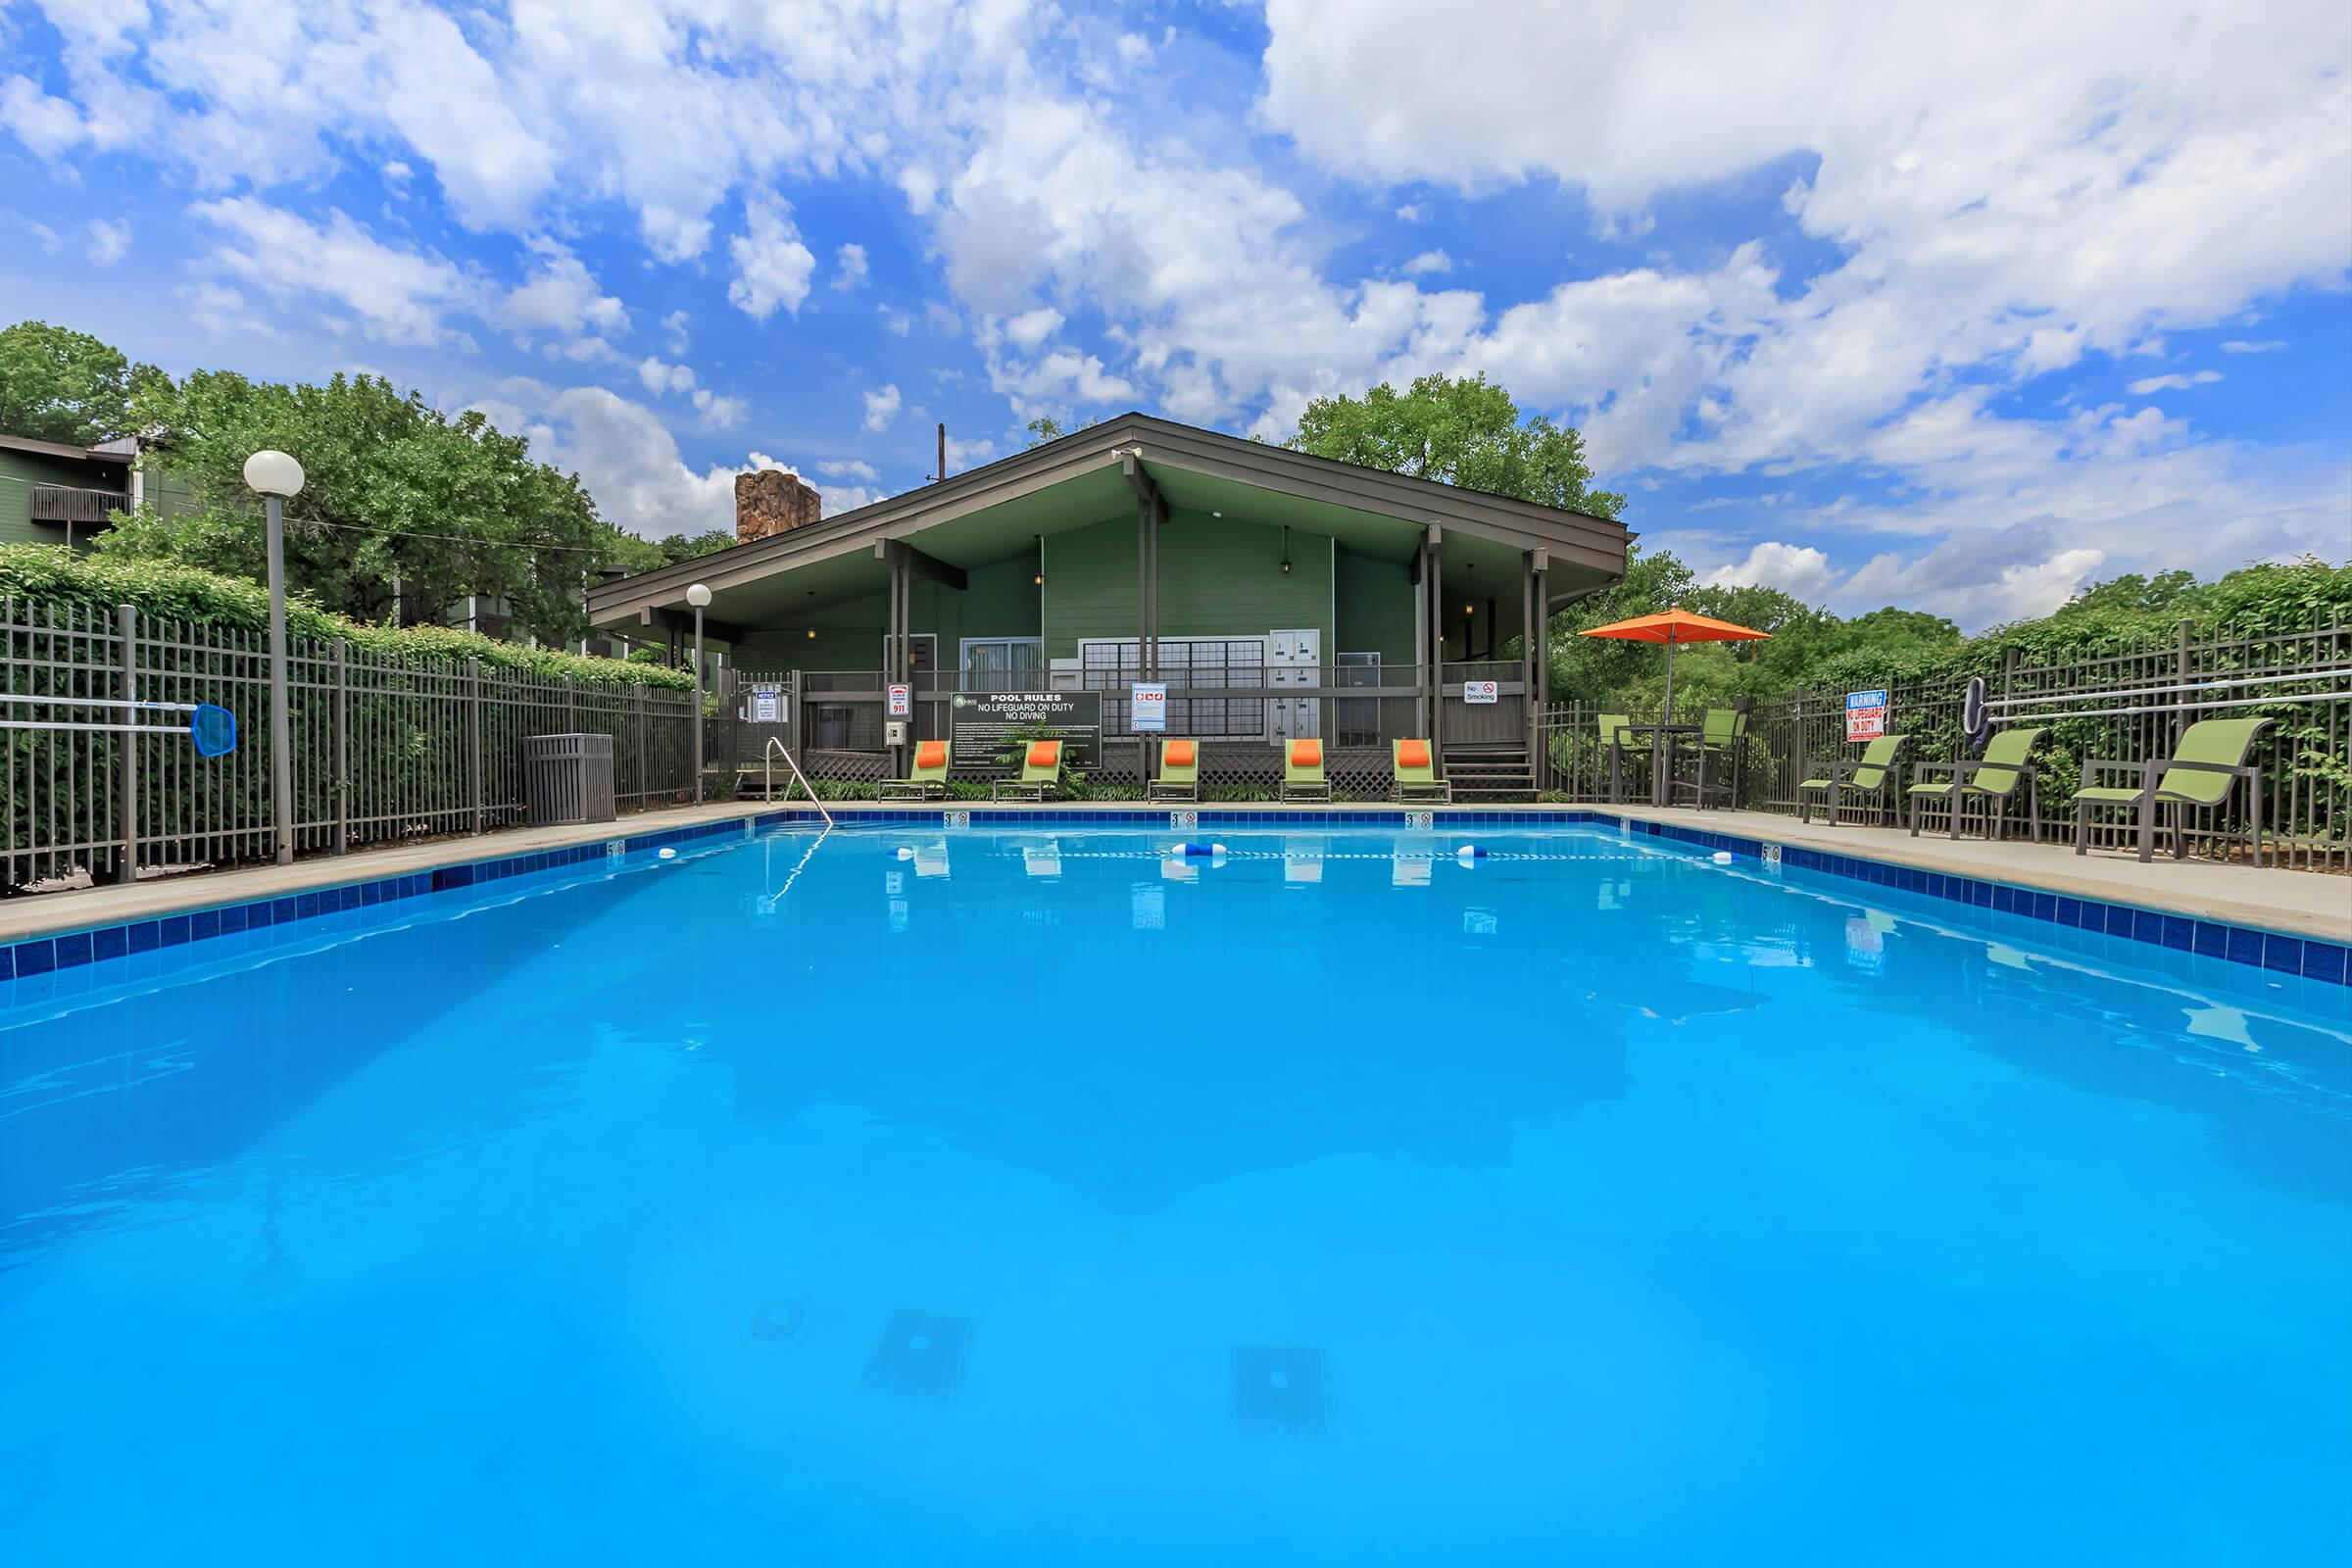 take a dive in the shimmering swimming pool at Sunrise Apartments in Nashville, Tennessee